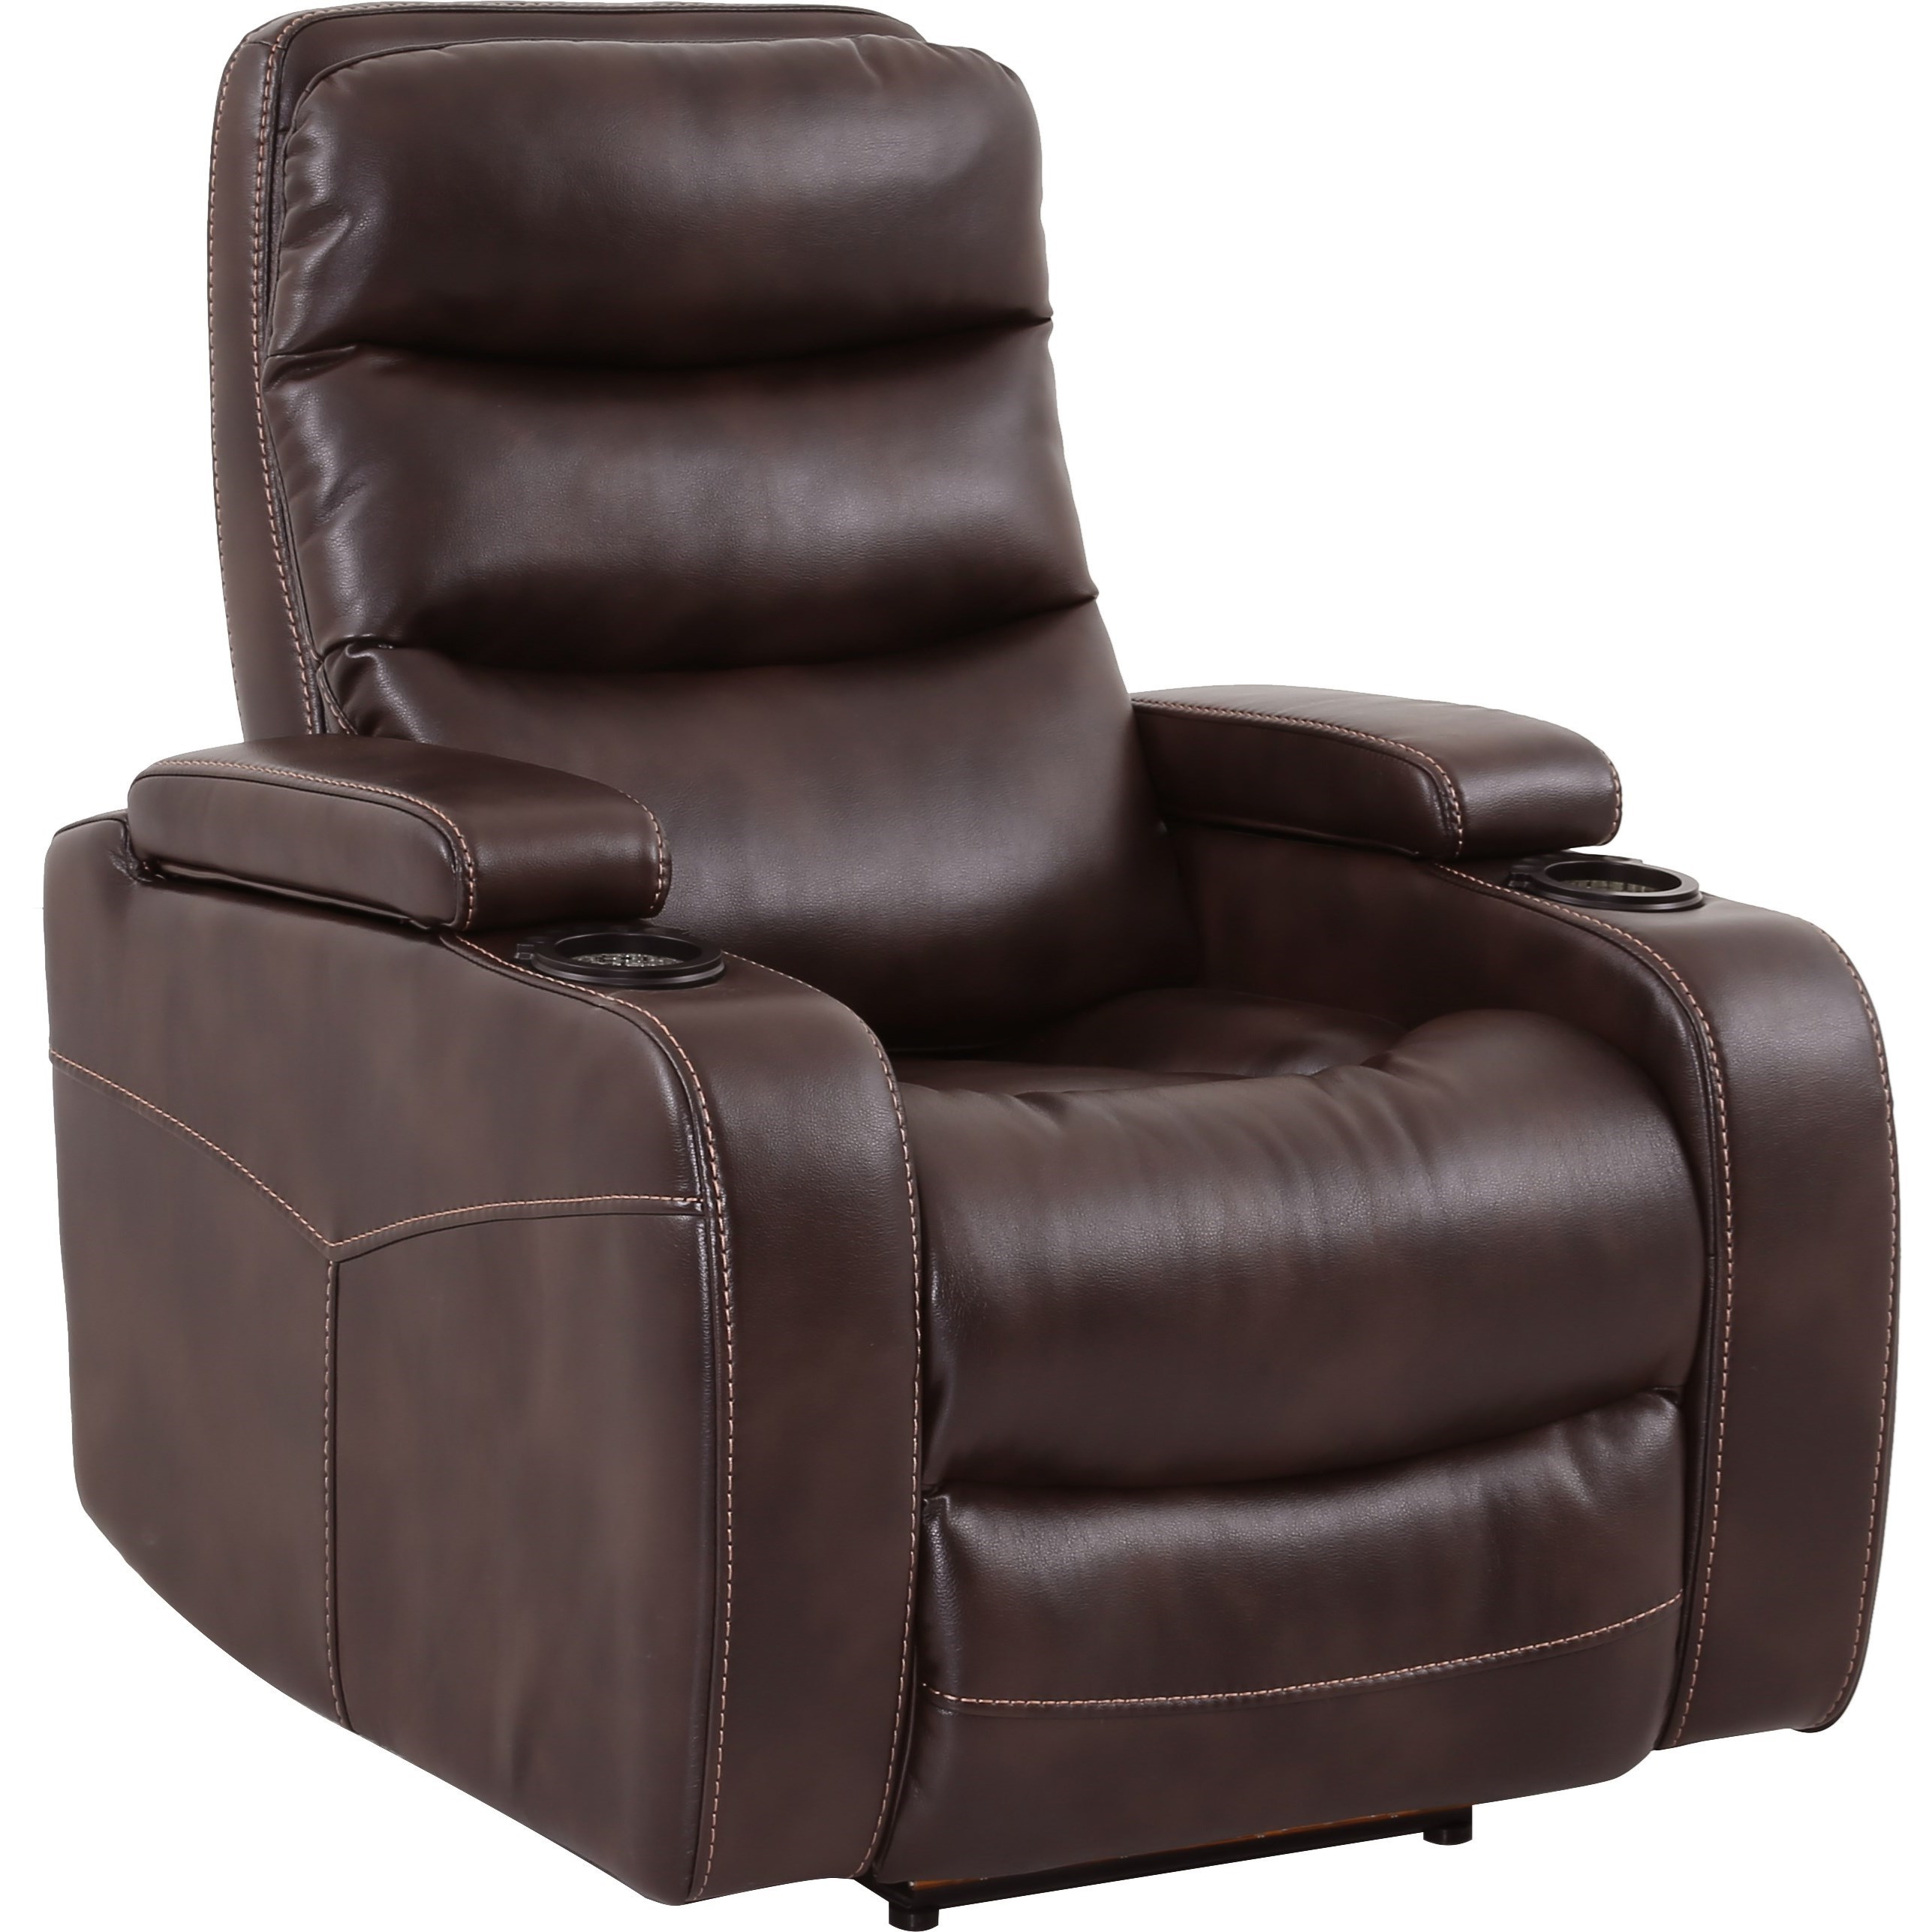 Contemporary Home Theater Power Recliner With Cup Holders